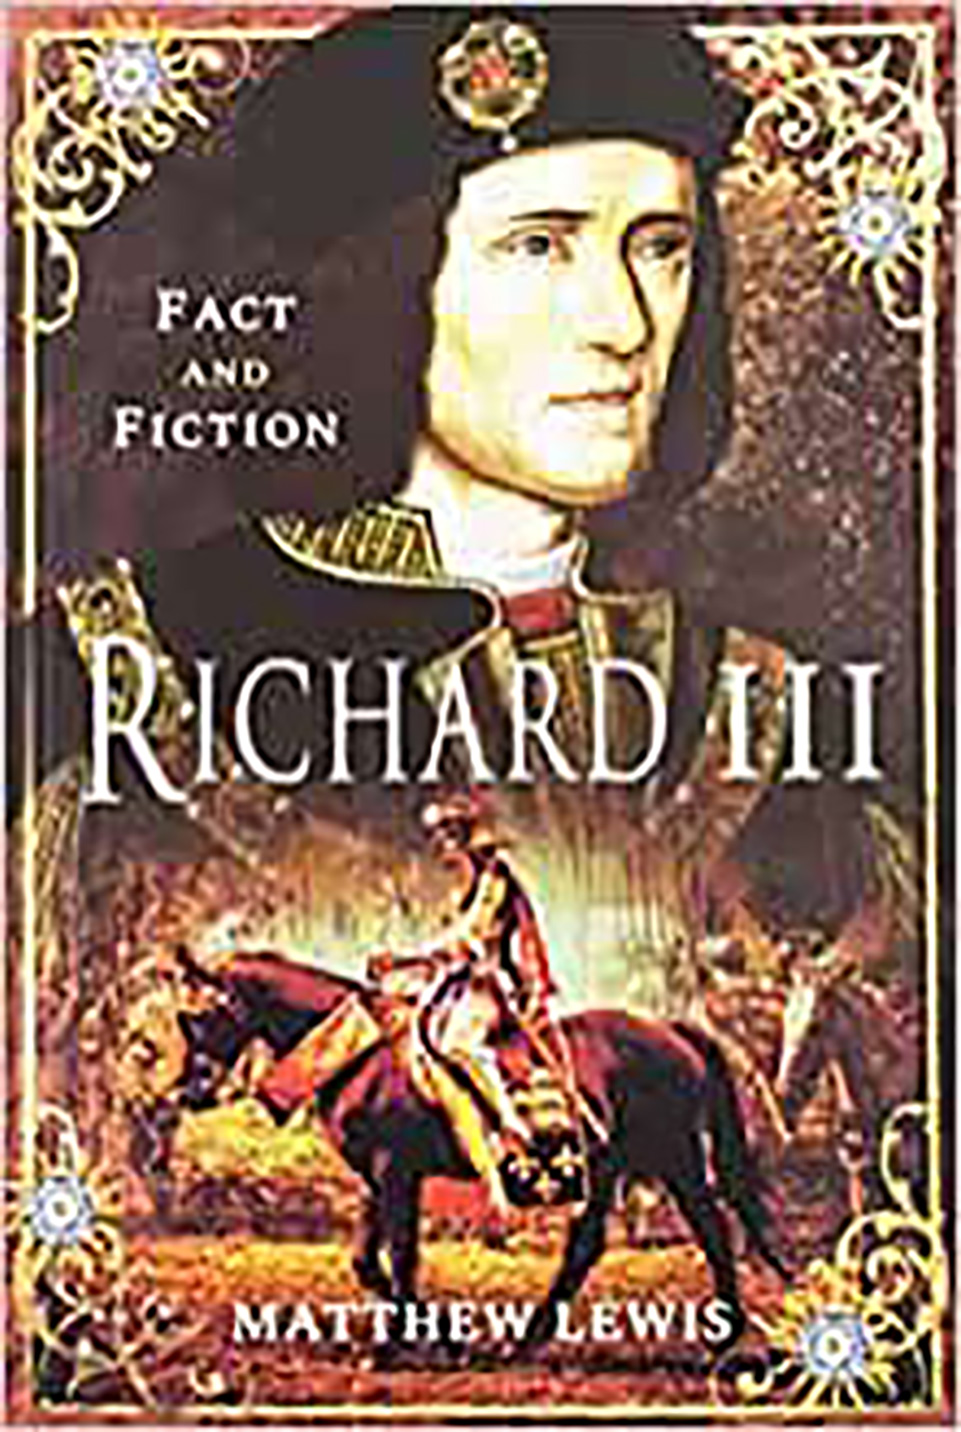 Front cover of a book: Richard III Fact and Fiction by Matthew Lewis